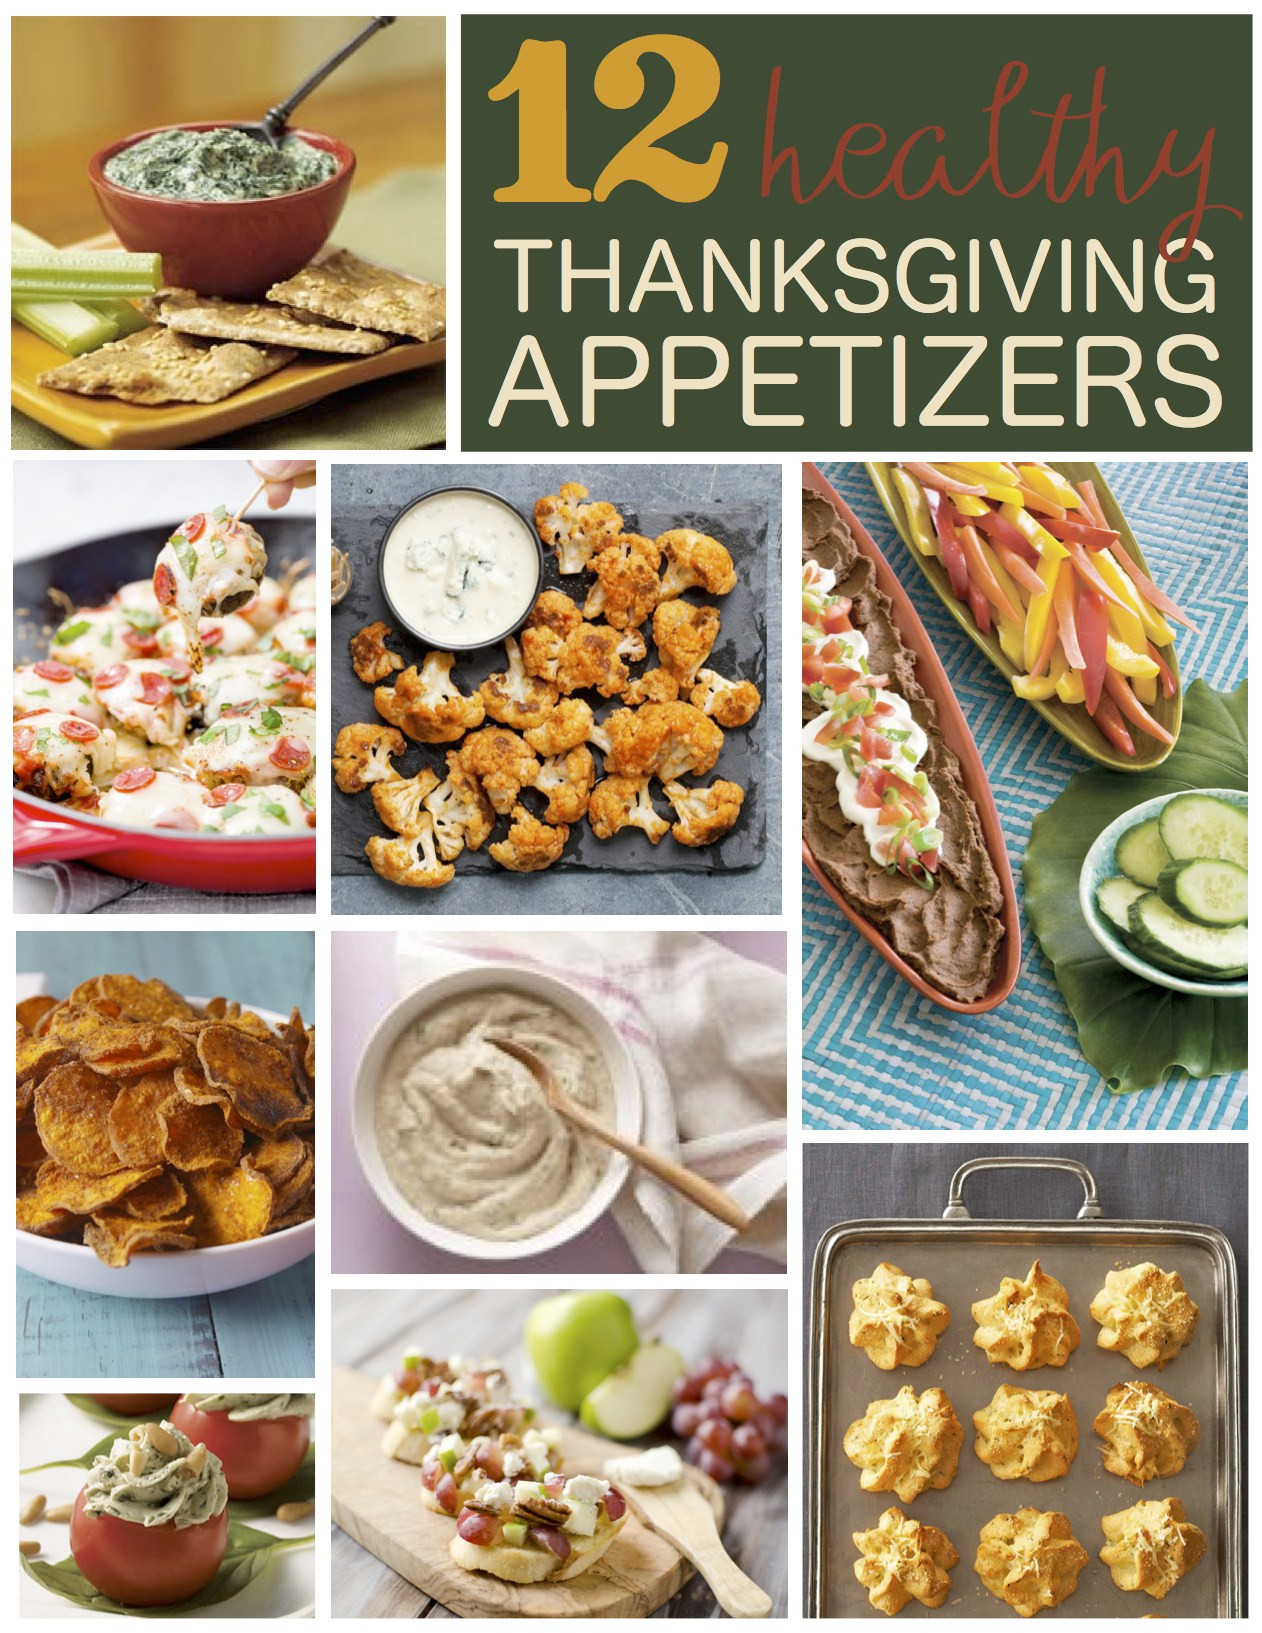 Healthy Thanksgiving Appetizers  12 Healthy Thanksgiving Appetizer Recipes Six Clever Sisters